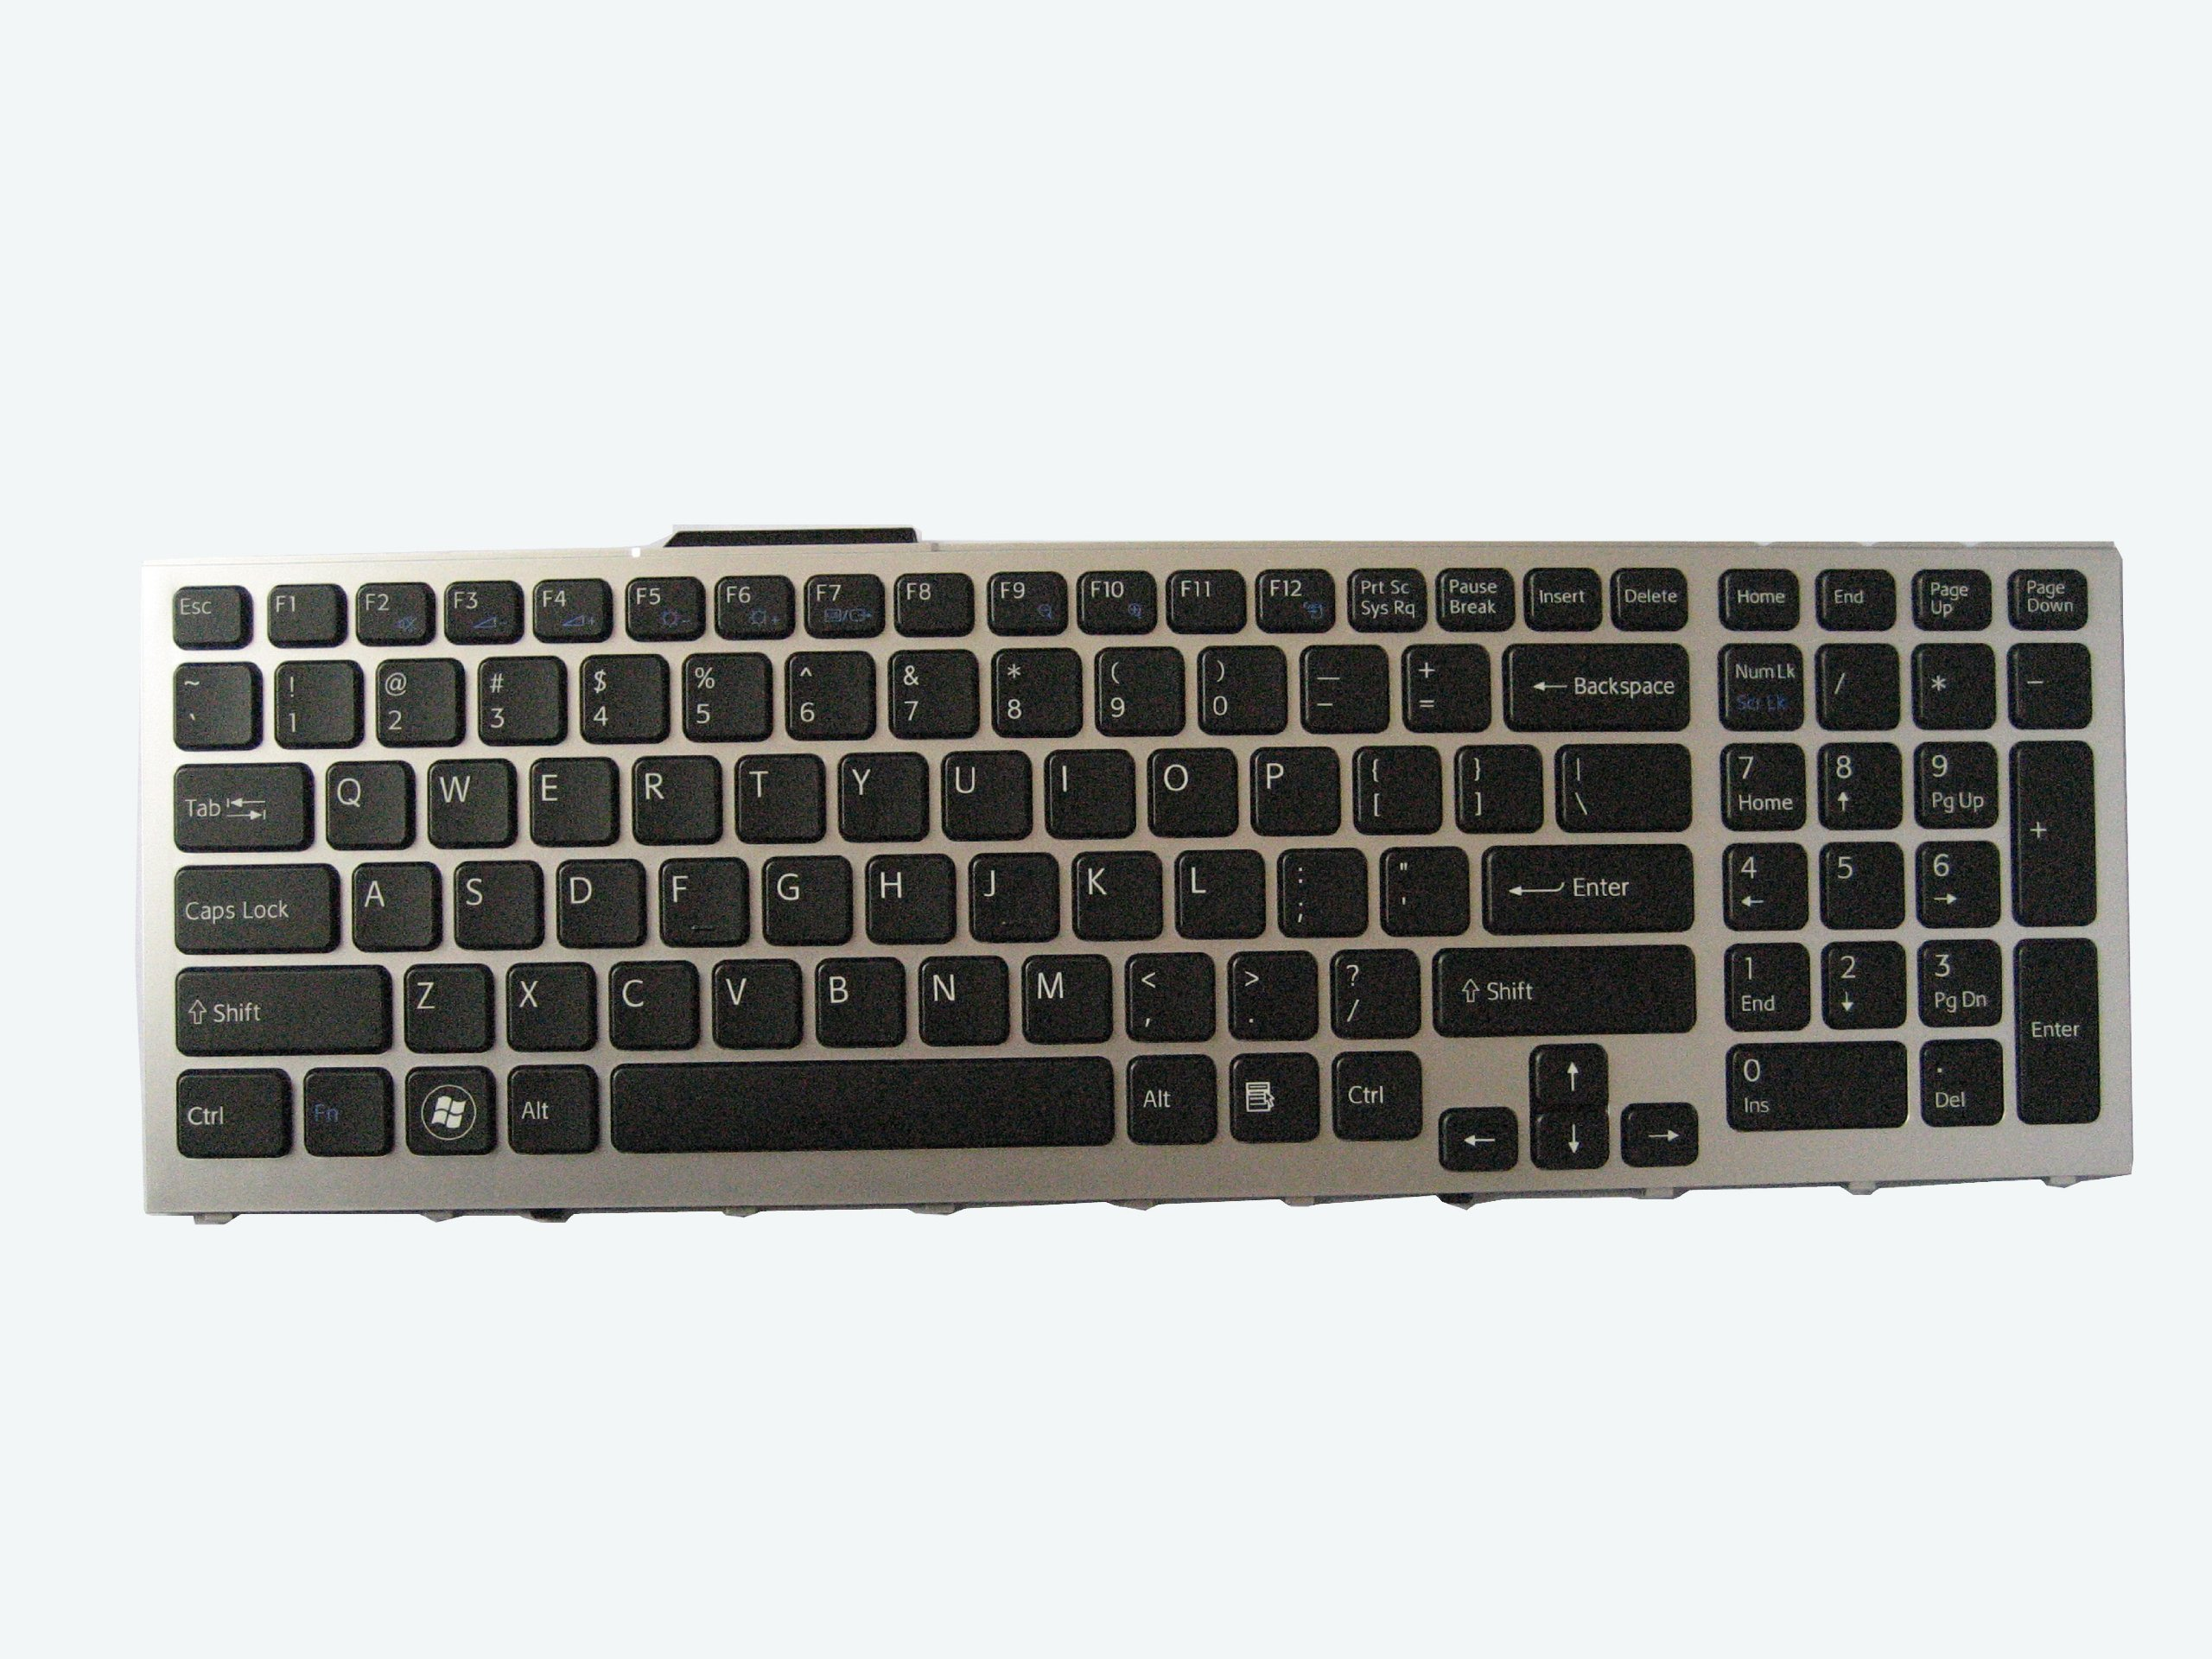 LotFancy Backlit Laptop Keyboard with Silver-Grey Frame for Sony Vaio VPC-F11 VPC-F119 VPC-F12 VPC-F13 VPCF11 VPCF12 VPCF13 PCG-8XXX Series Notebook US English Layout